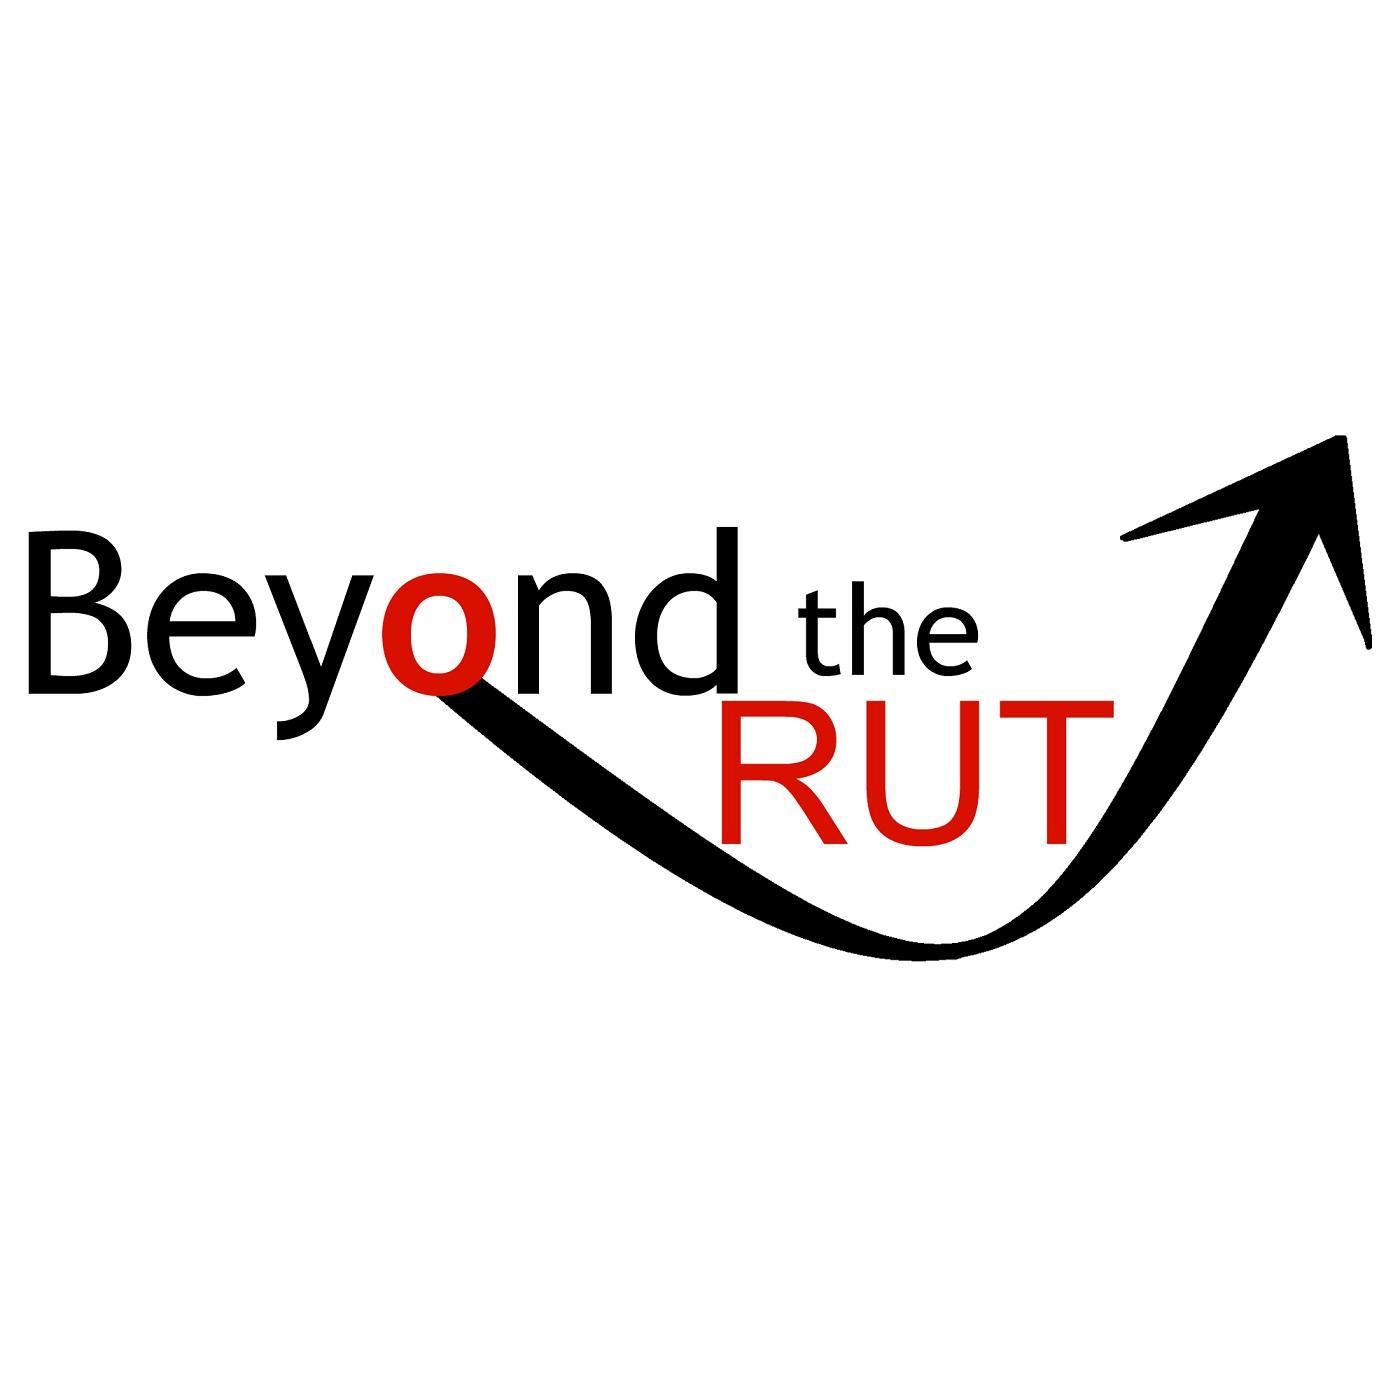 Beyond the Rut